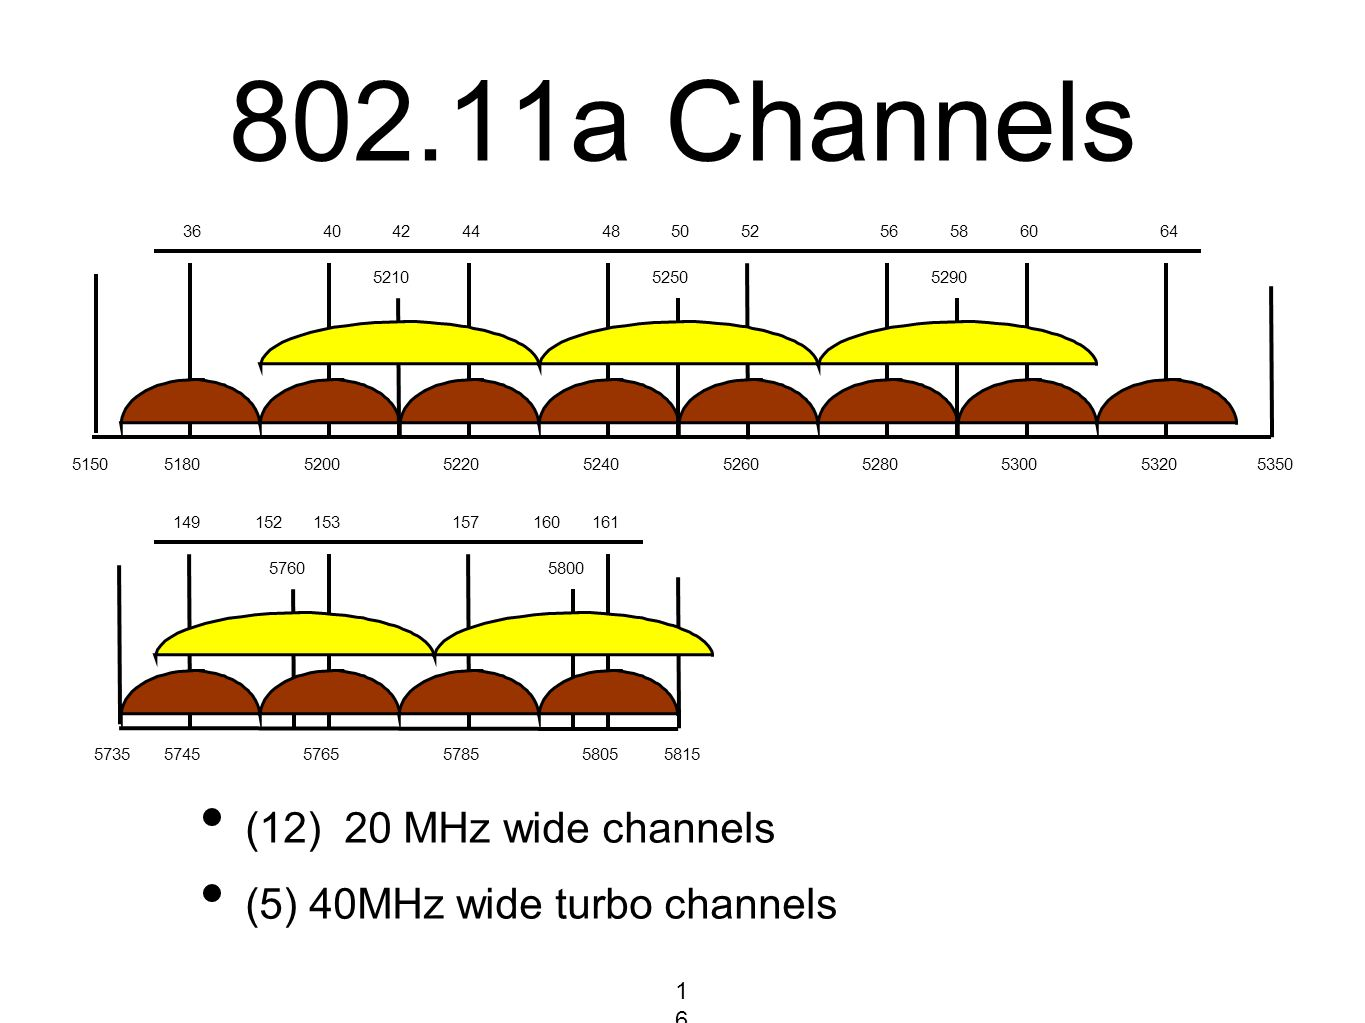 802.11a Channels (12) 20 MHz wide channels